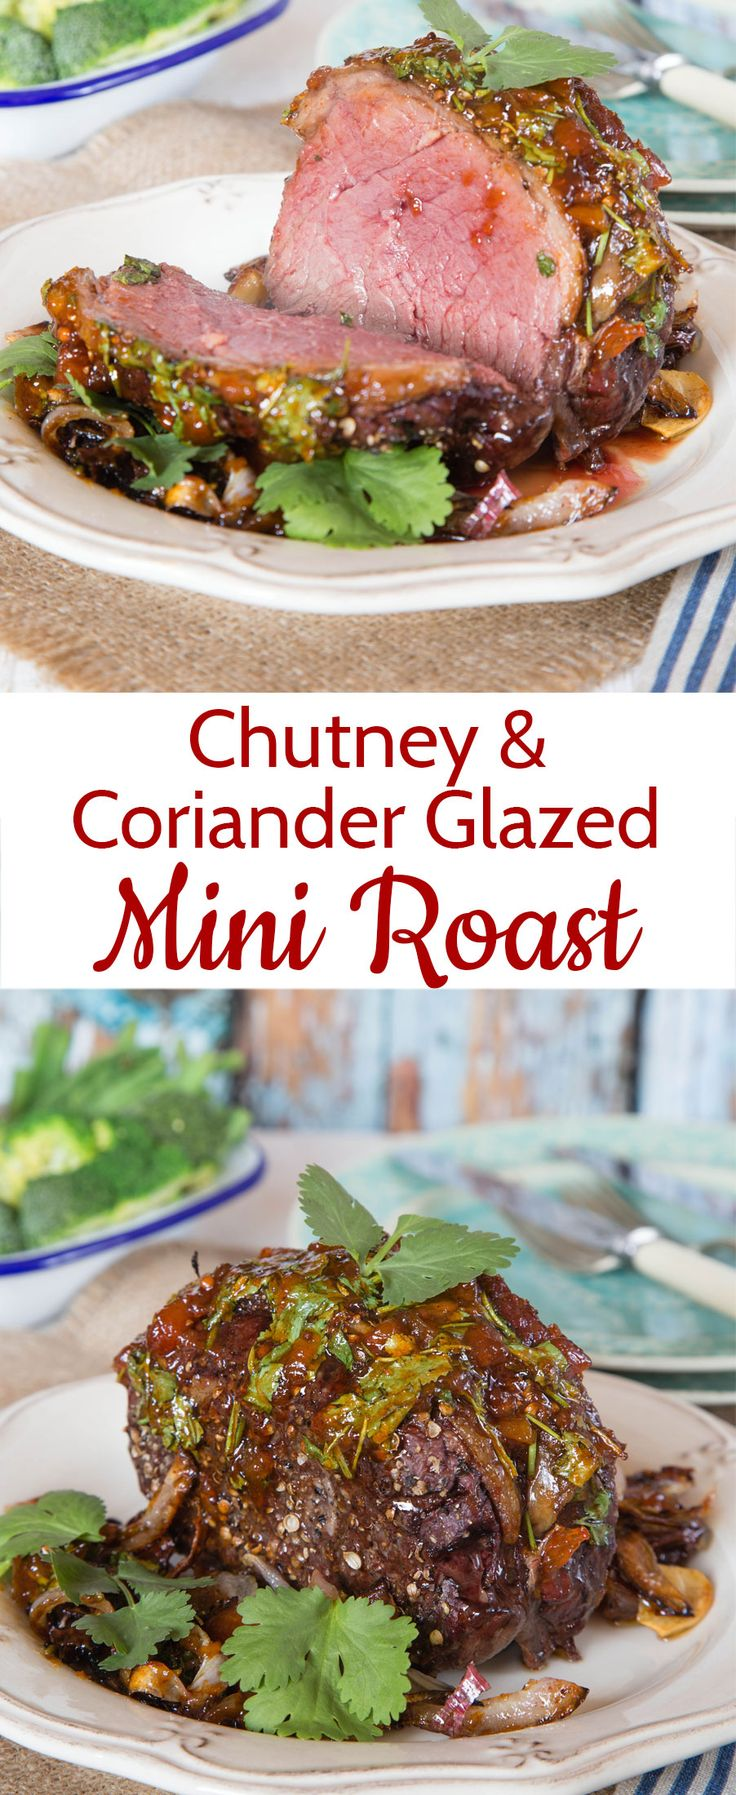 This quick cook mini roast is glazed with coriander and chutney and is perfect for mid-week dining